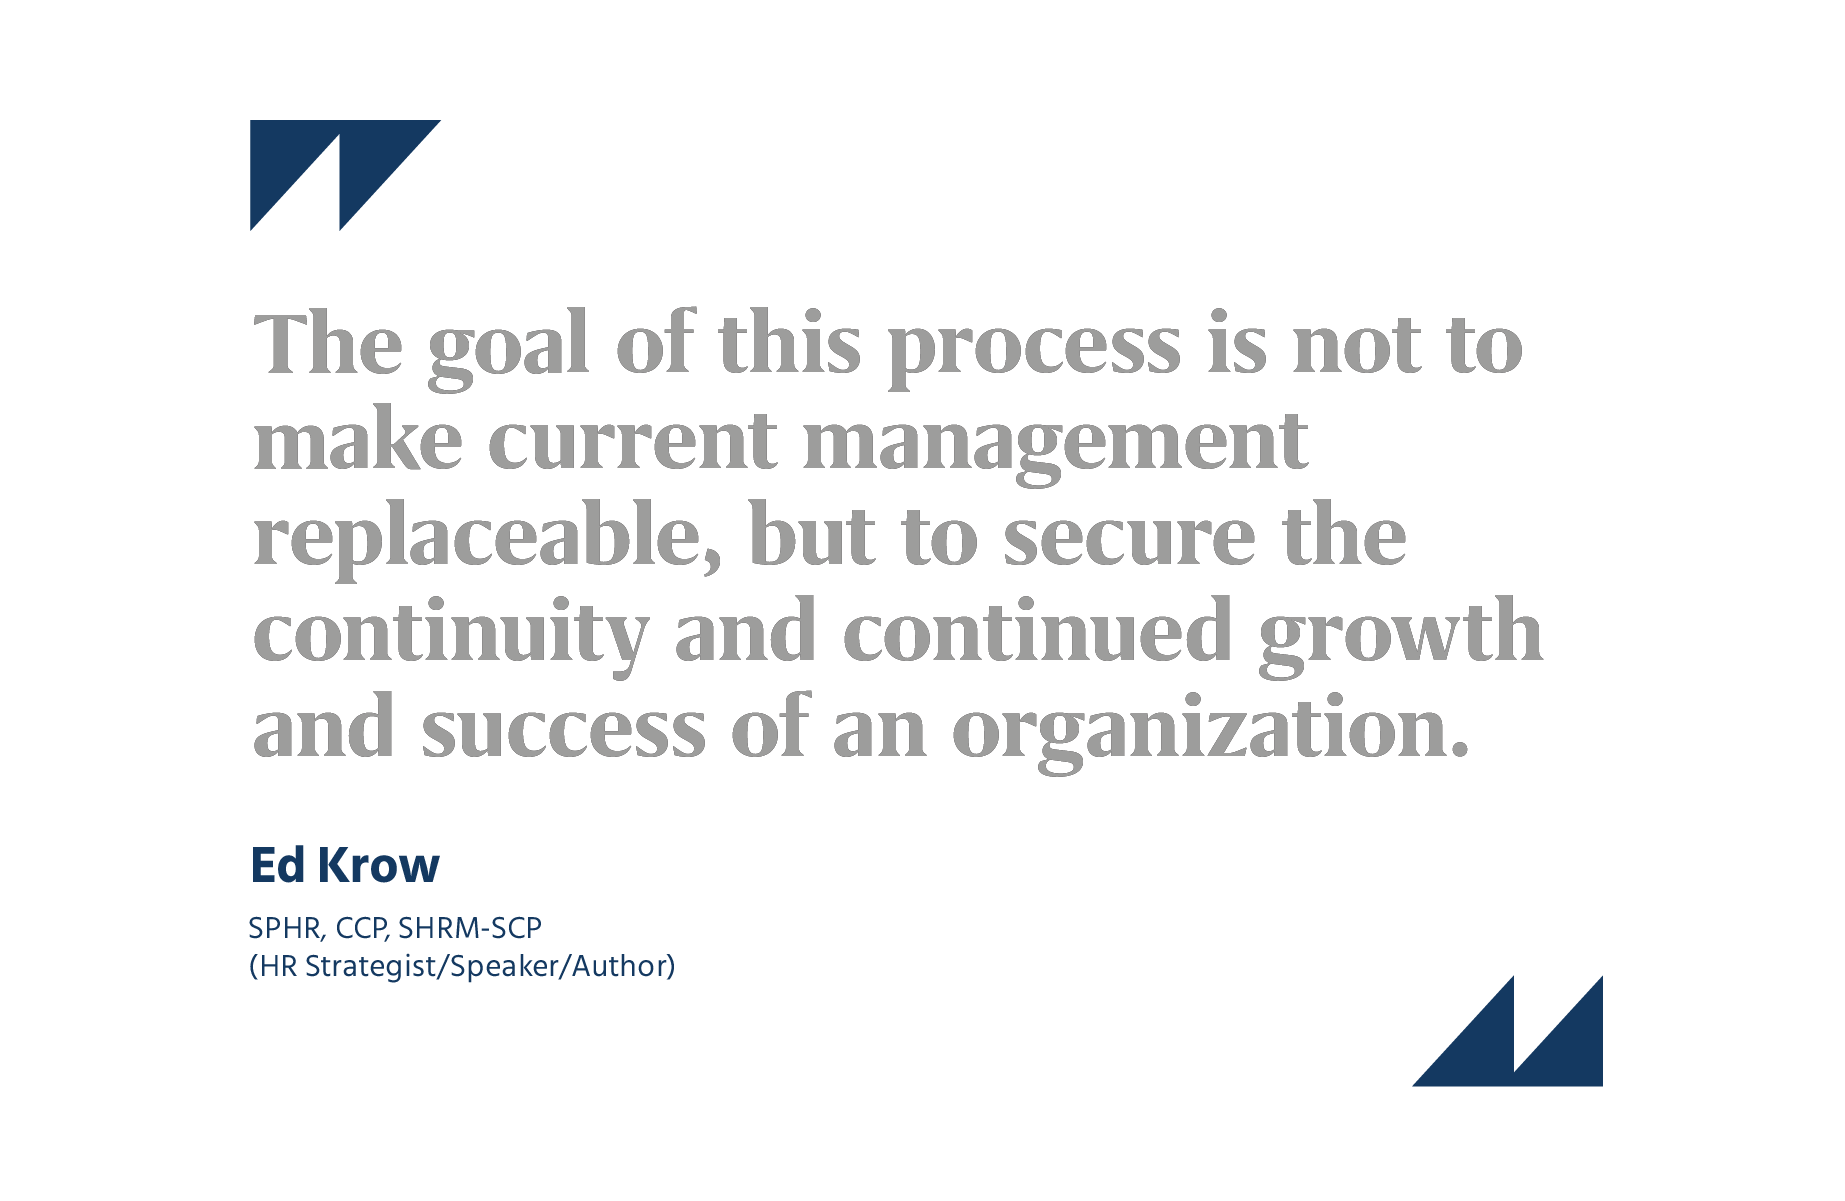 A quote from Ed Krow regarding Succession Planning